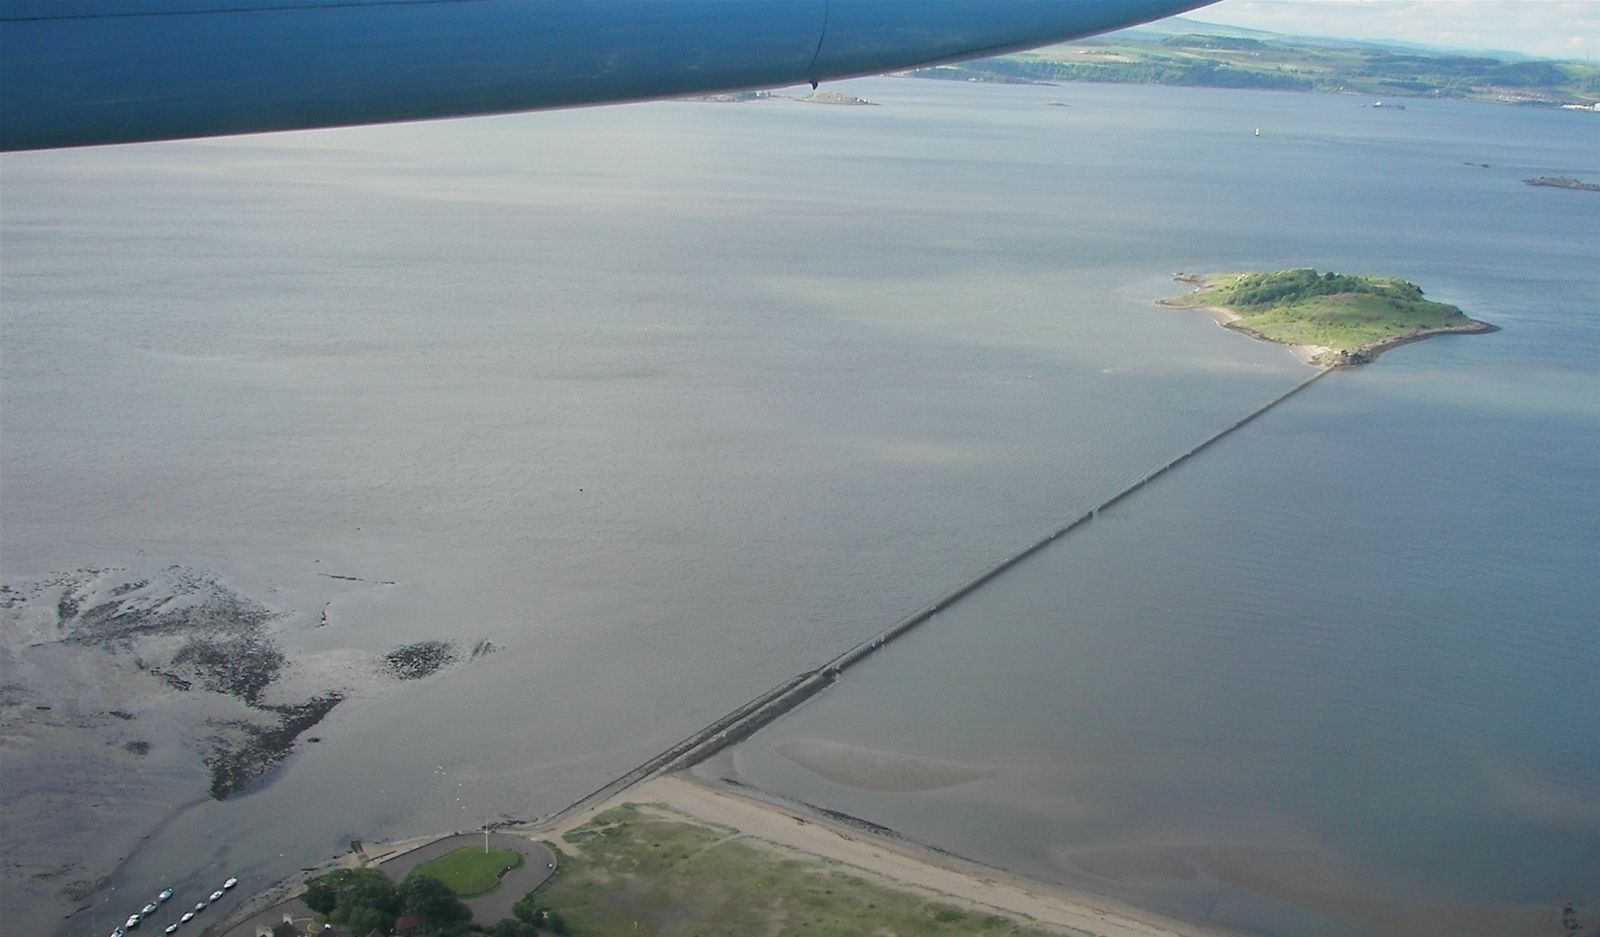 Description: https://media.foody.vn/images/Cramond_Island_and_causeway_from_air.JPG